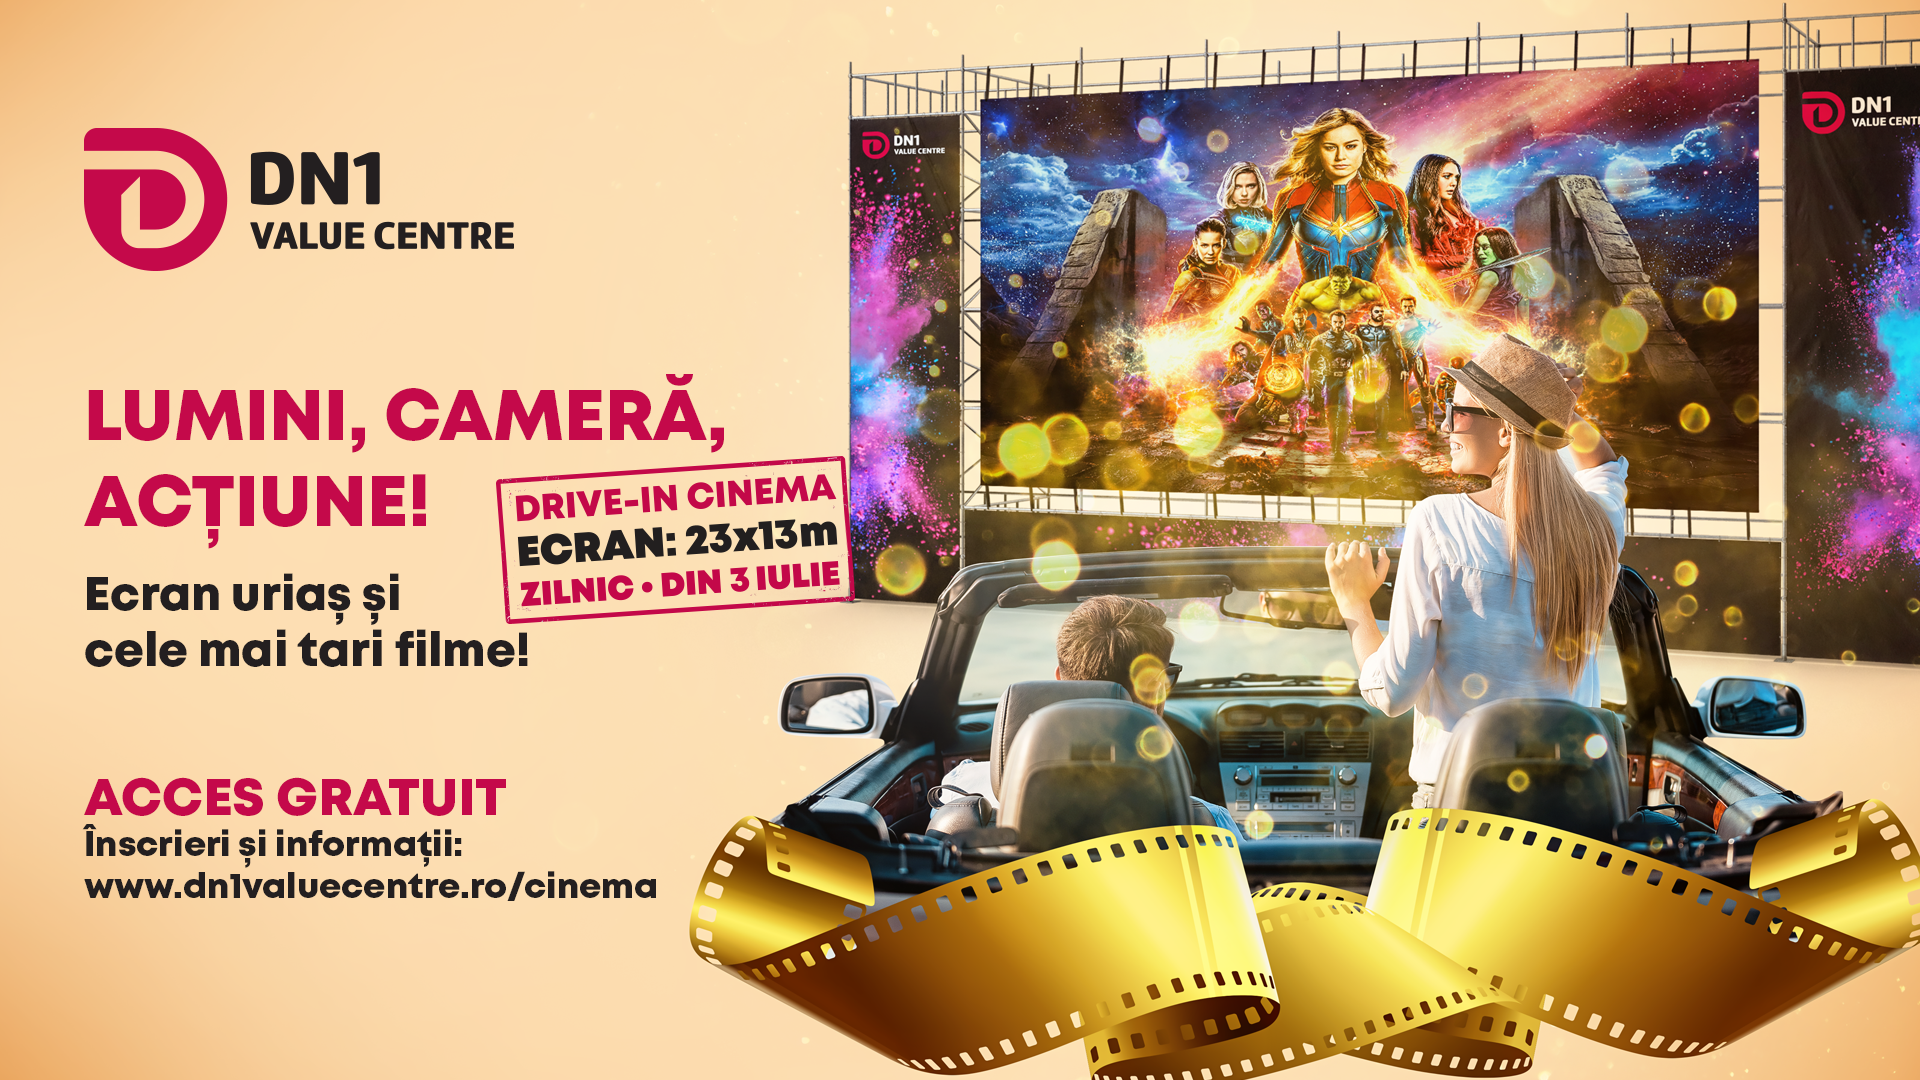 Drive-in Cinema GRATUIT